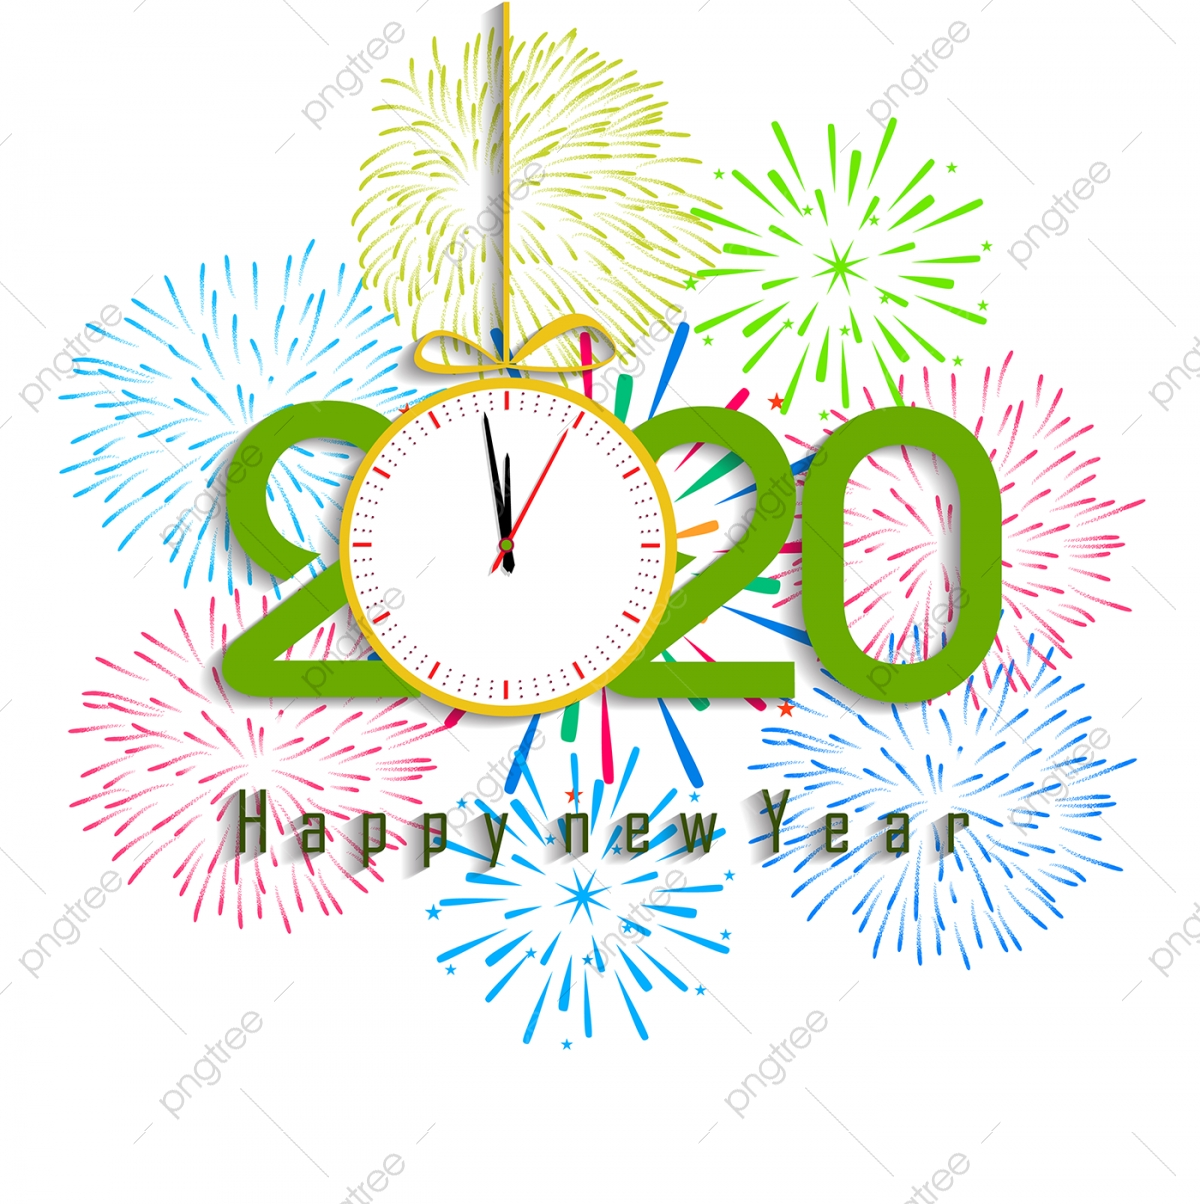 Happy New Year 2020 Background With Fireworks 2020 ...